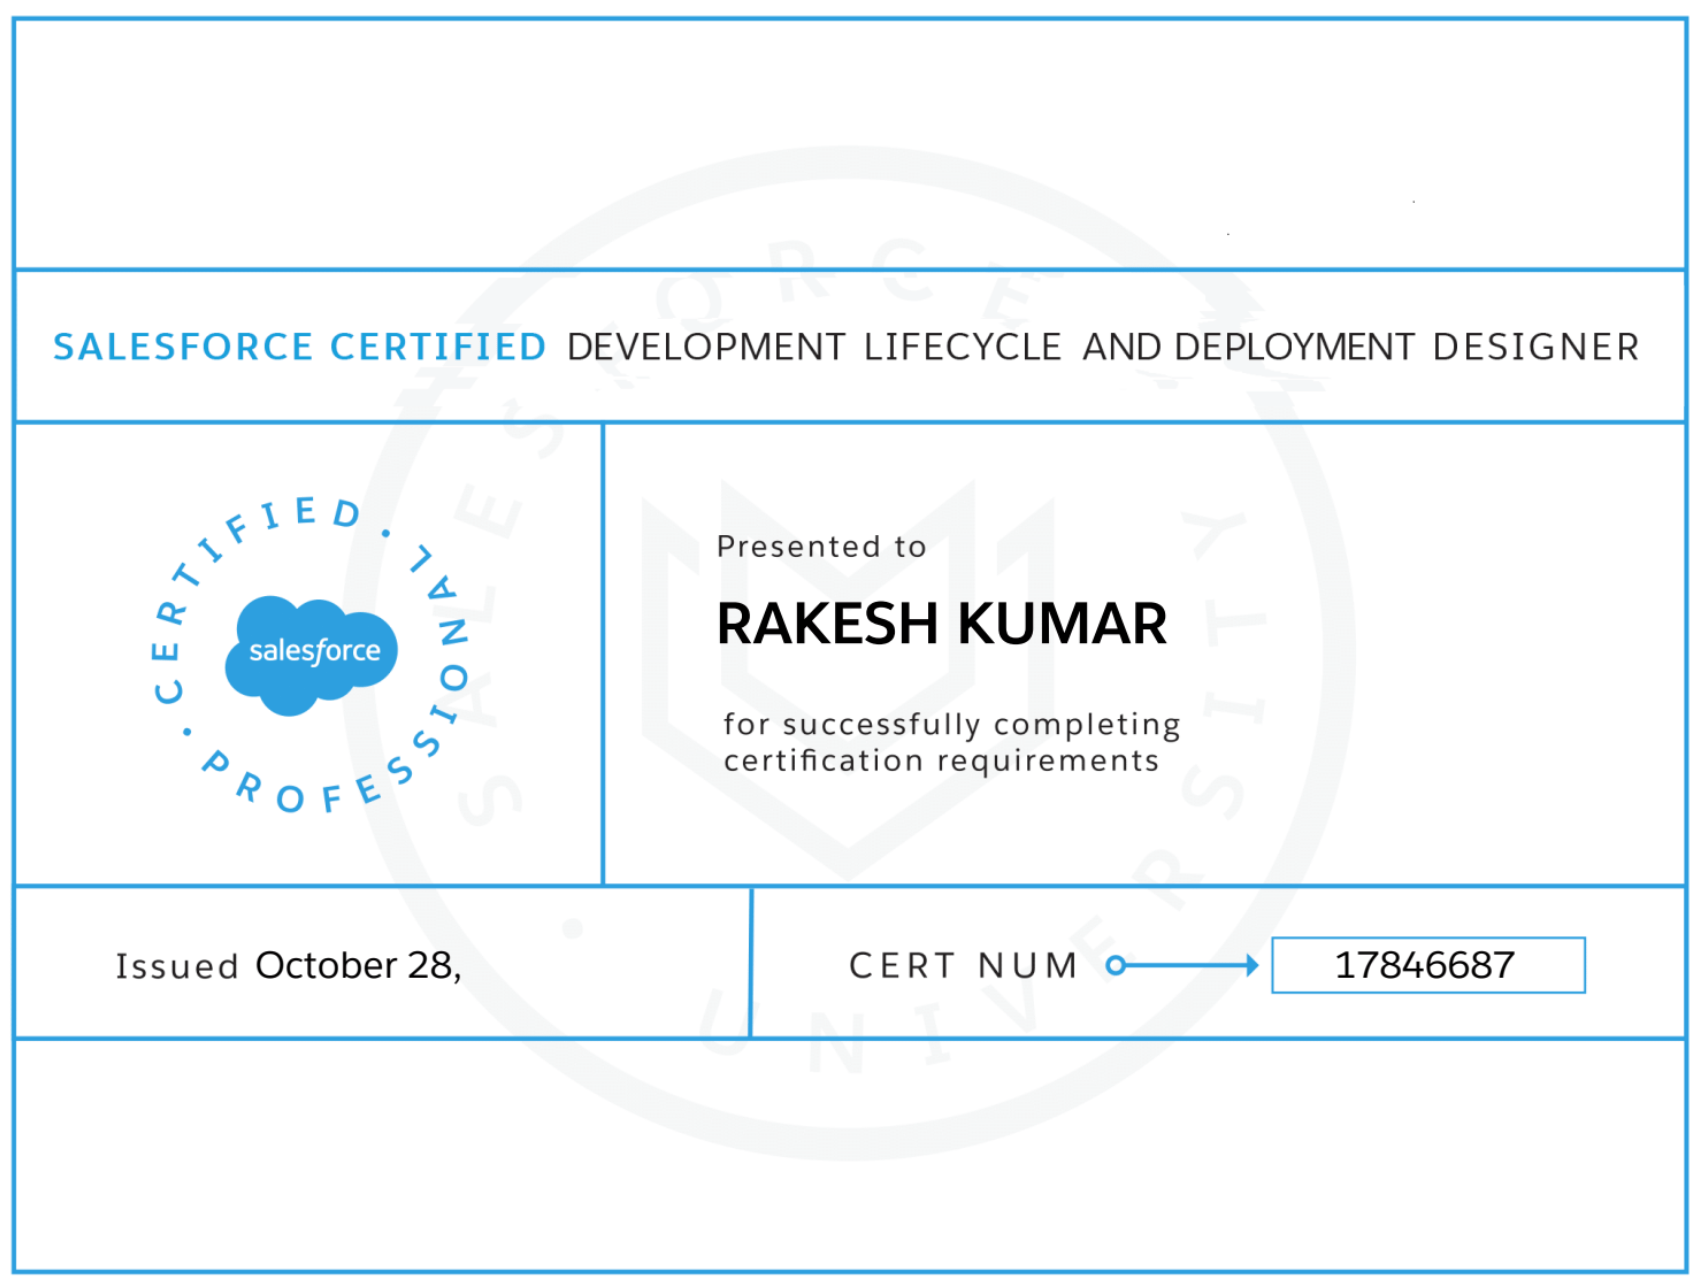 Acing Development Lifecycle and Deployment Designer Certification